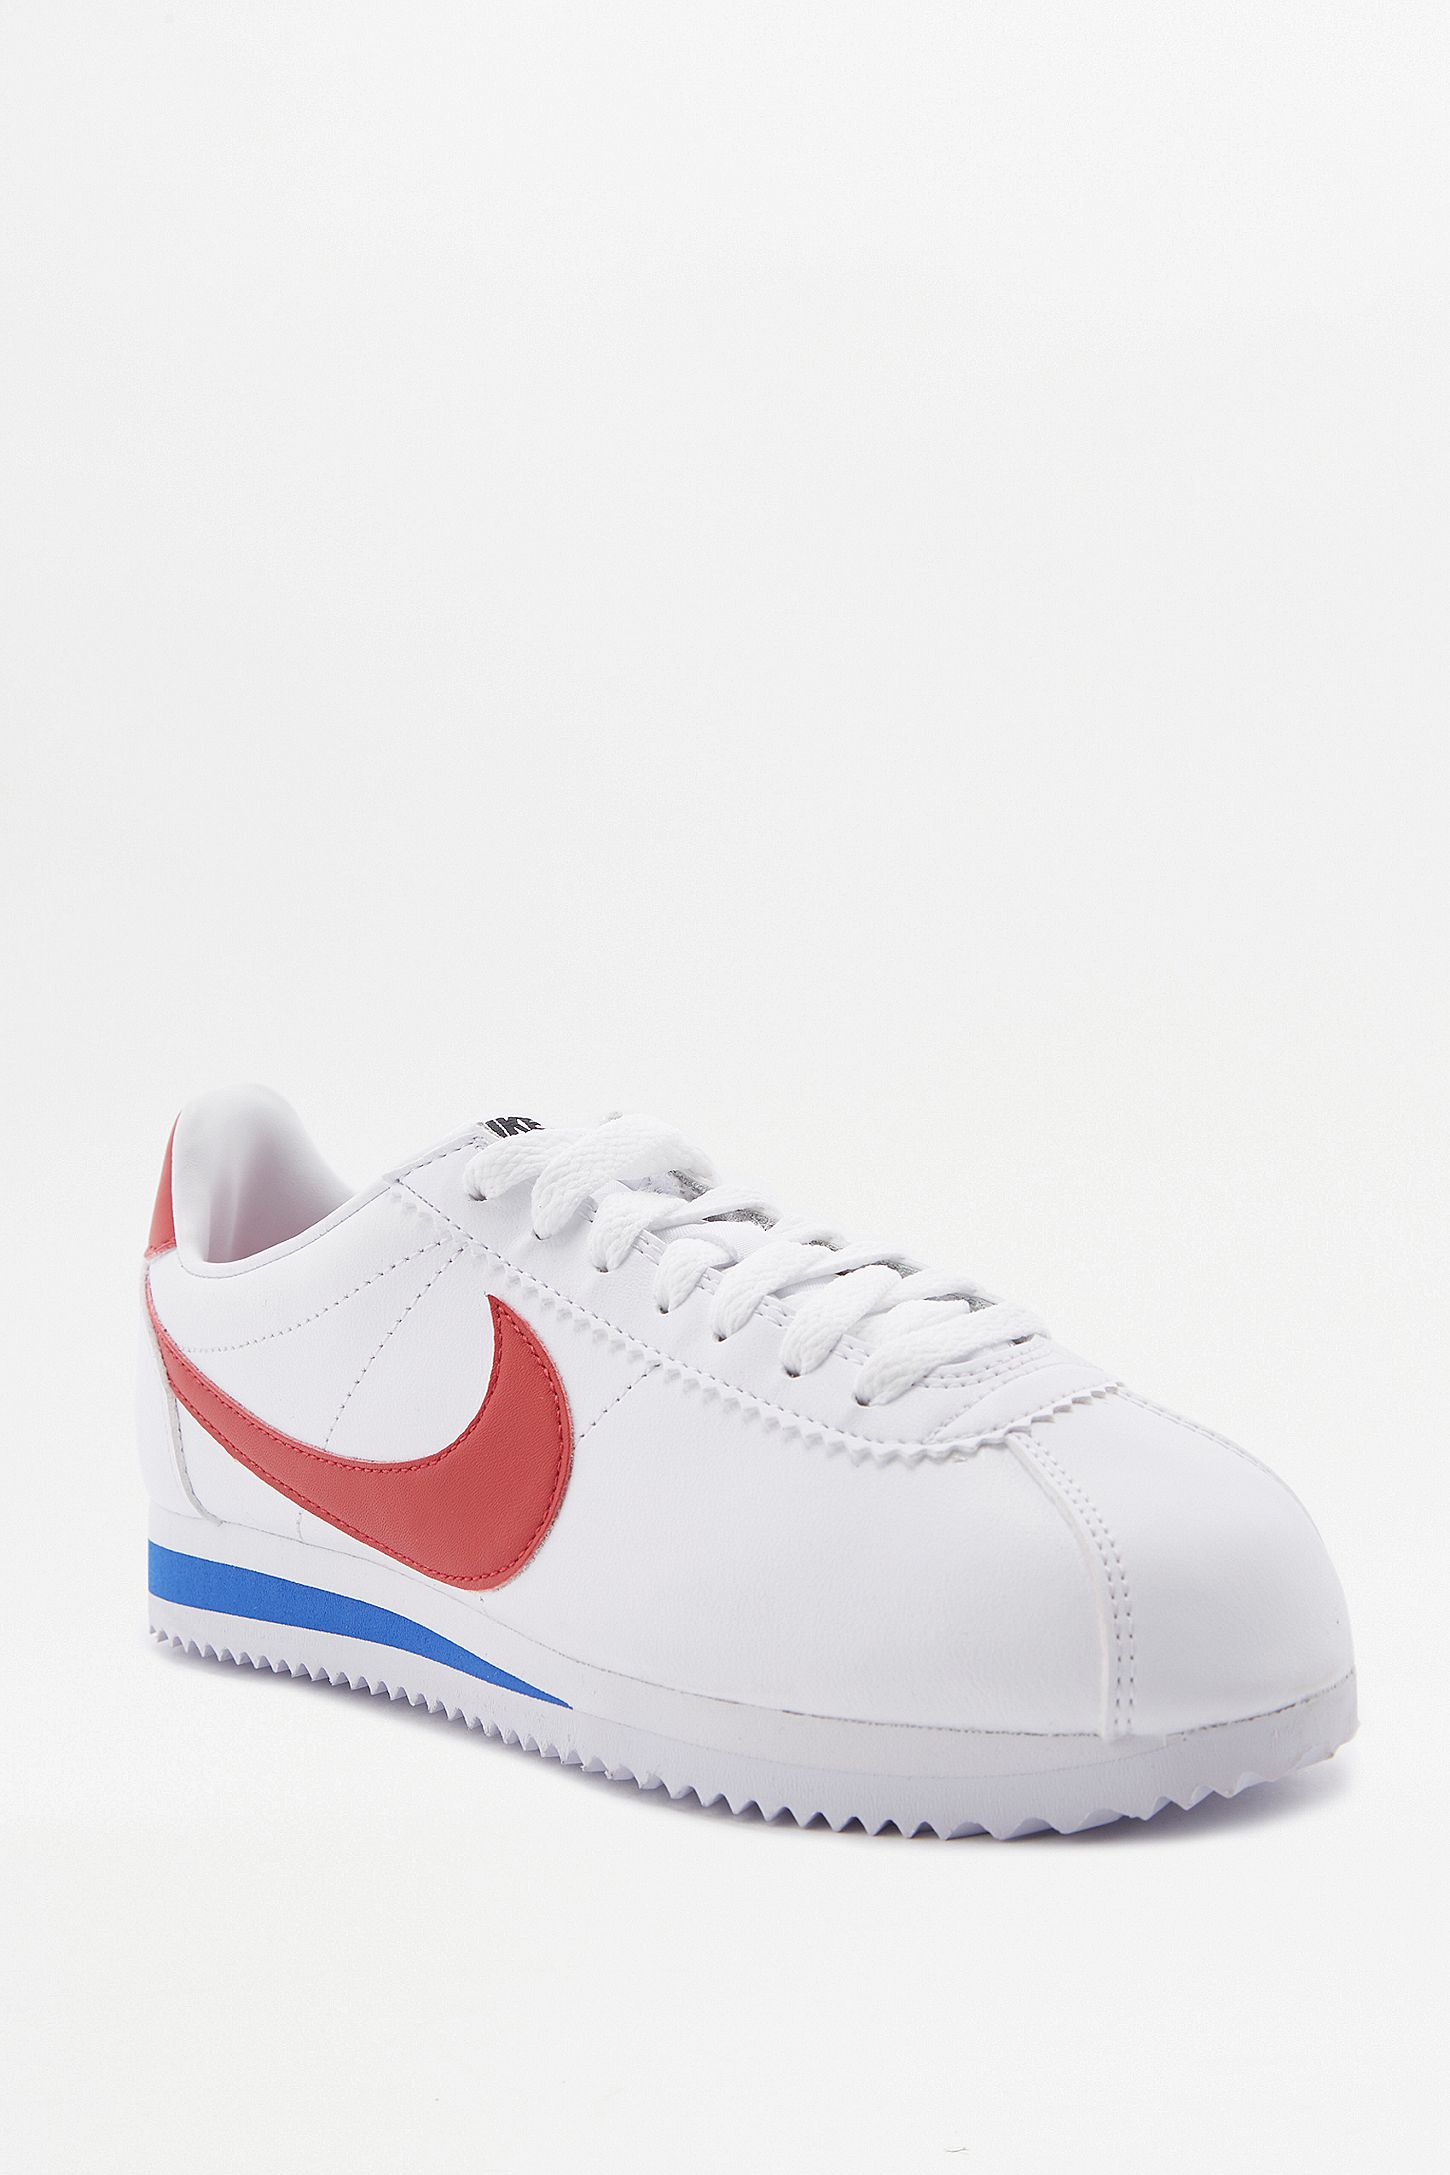 huge inventory be2cf f74b9 ... czech nike cortez white red and blue leather trainers. click on image  to zoom.